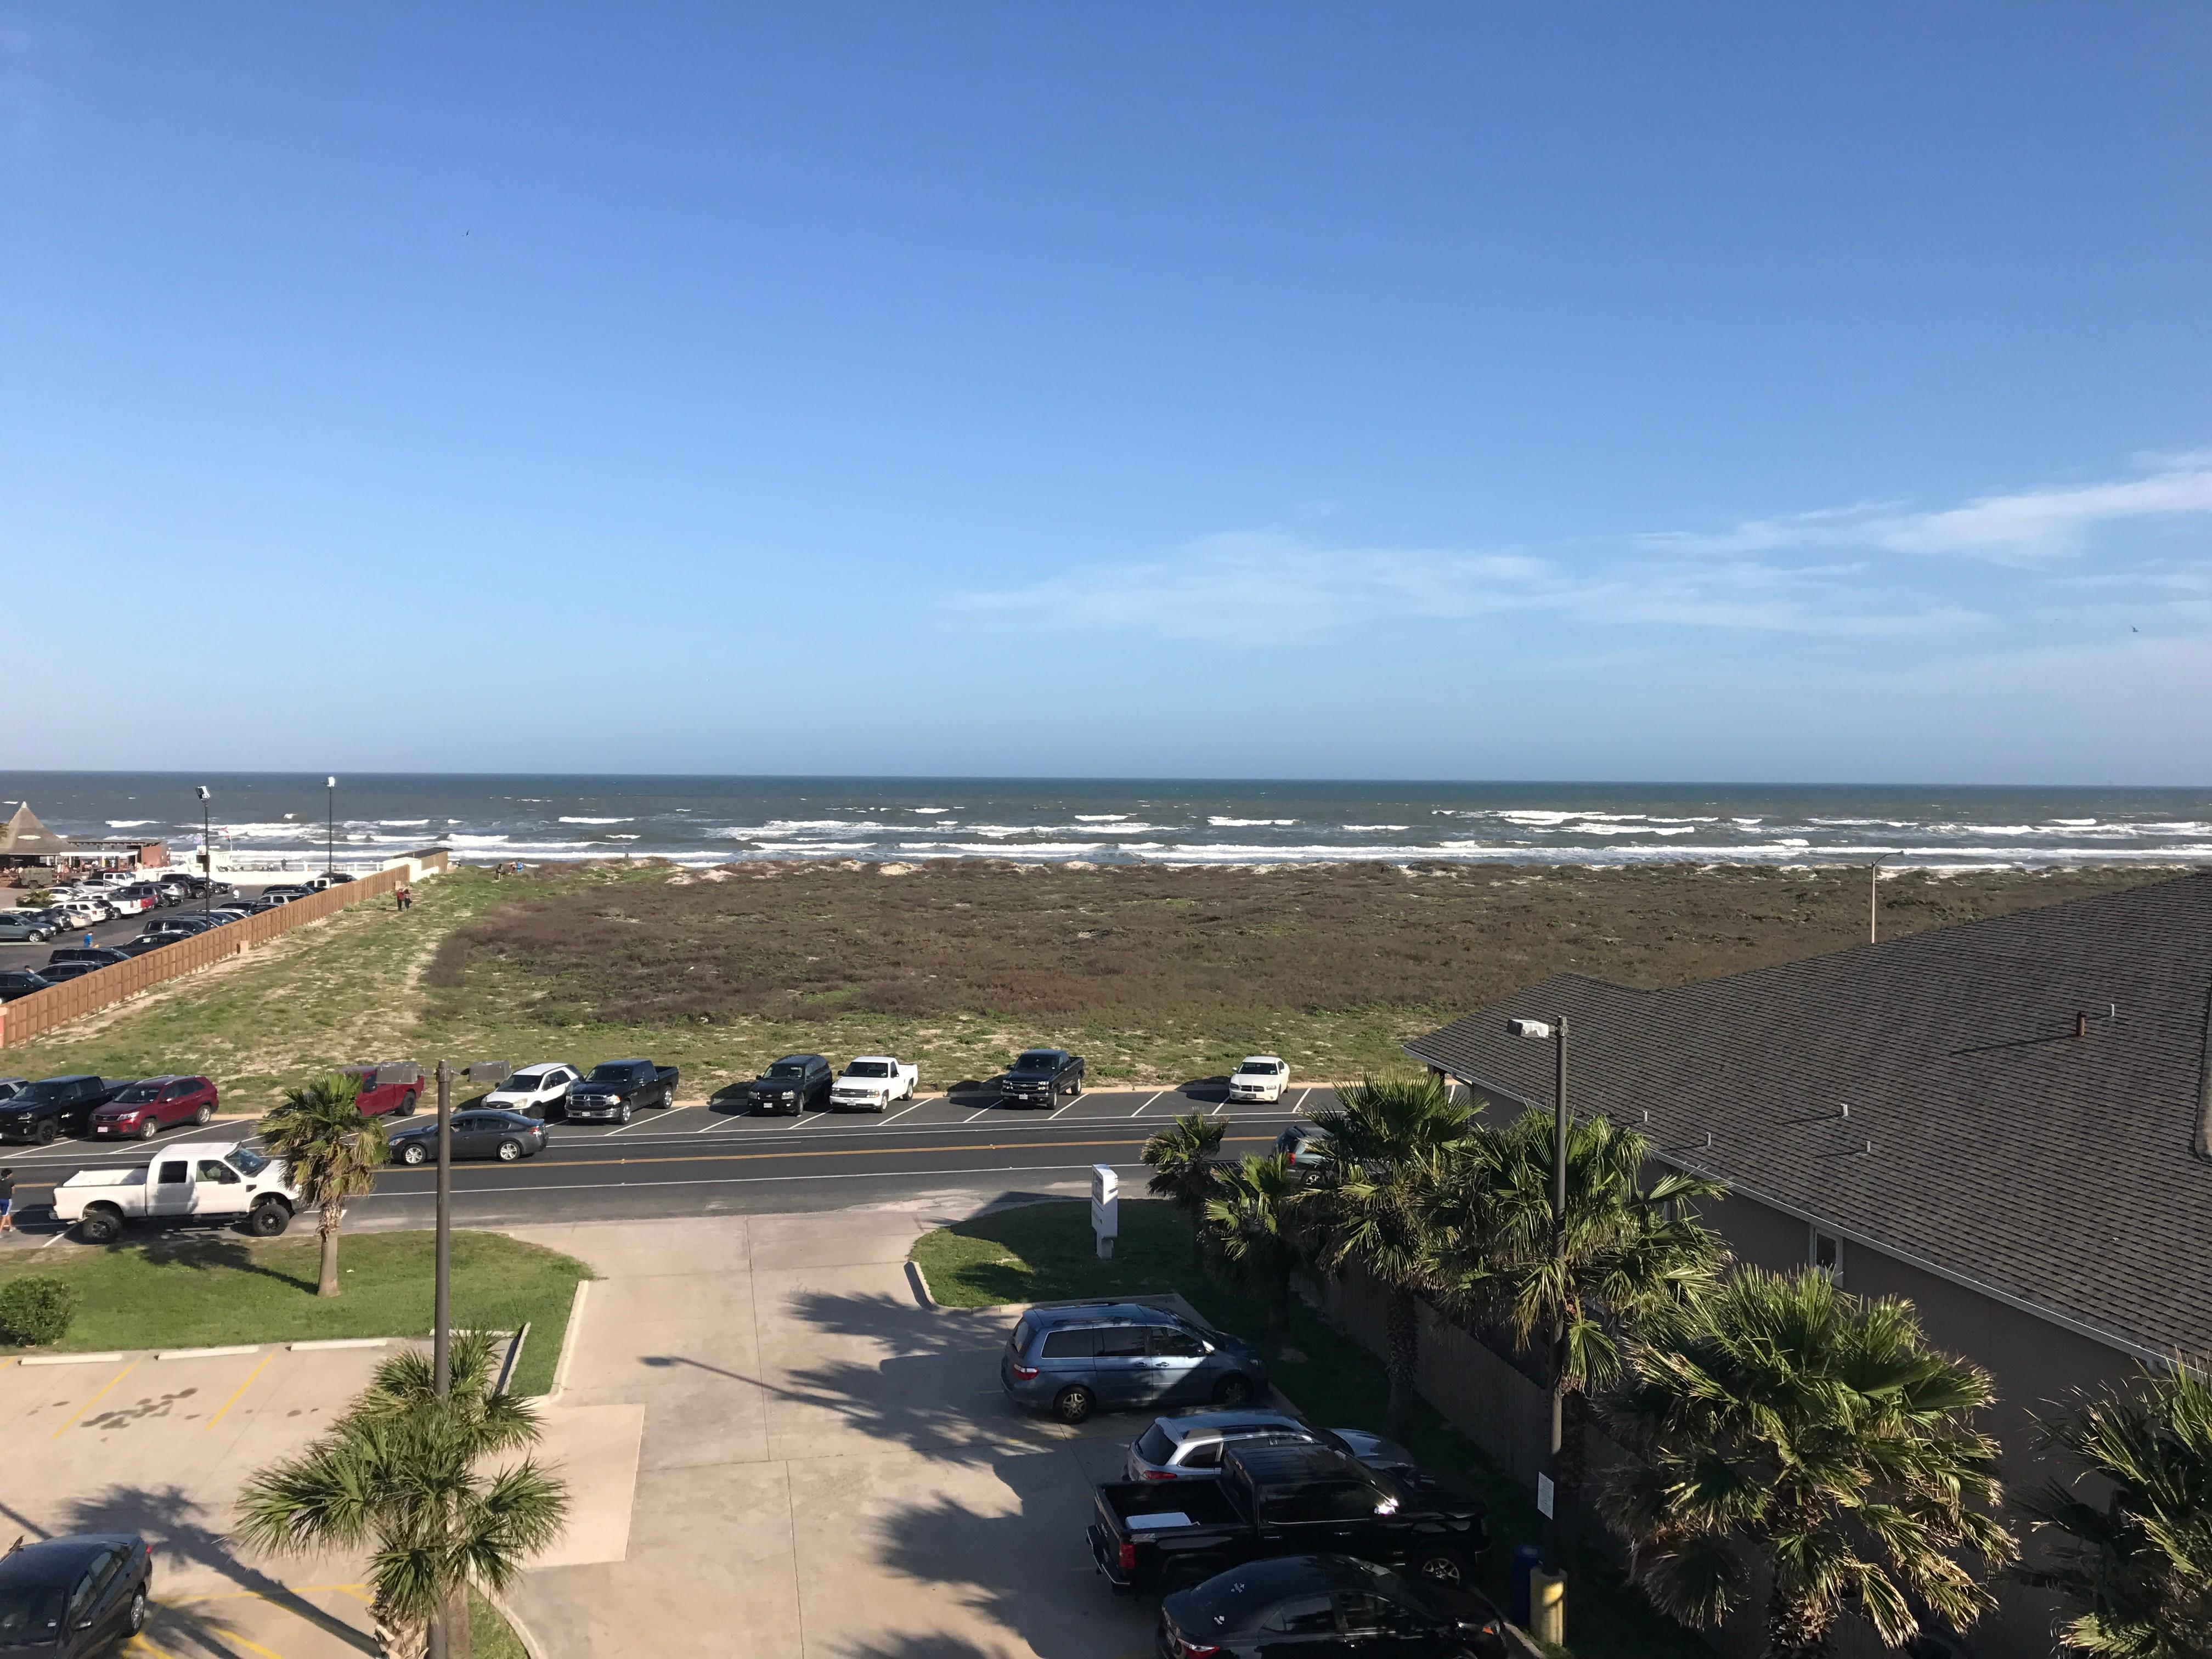 Our view from the room